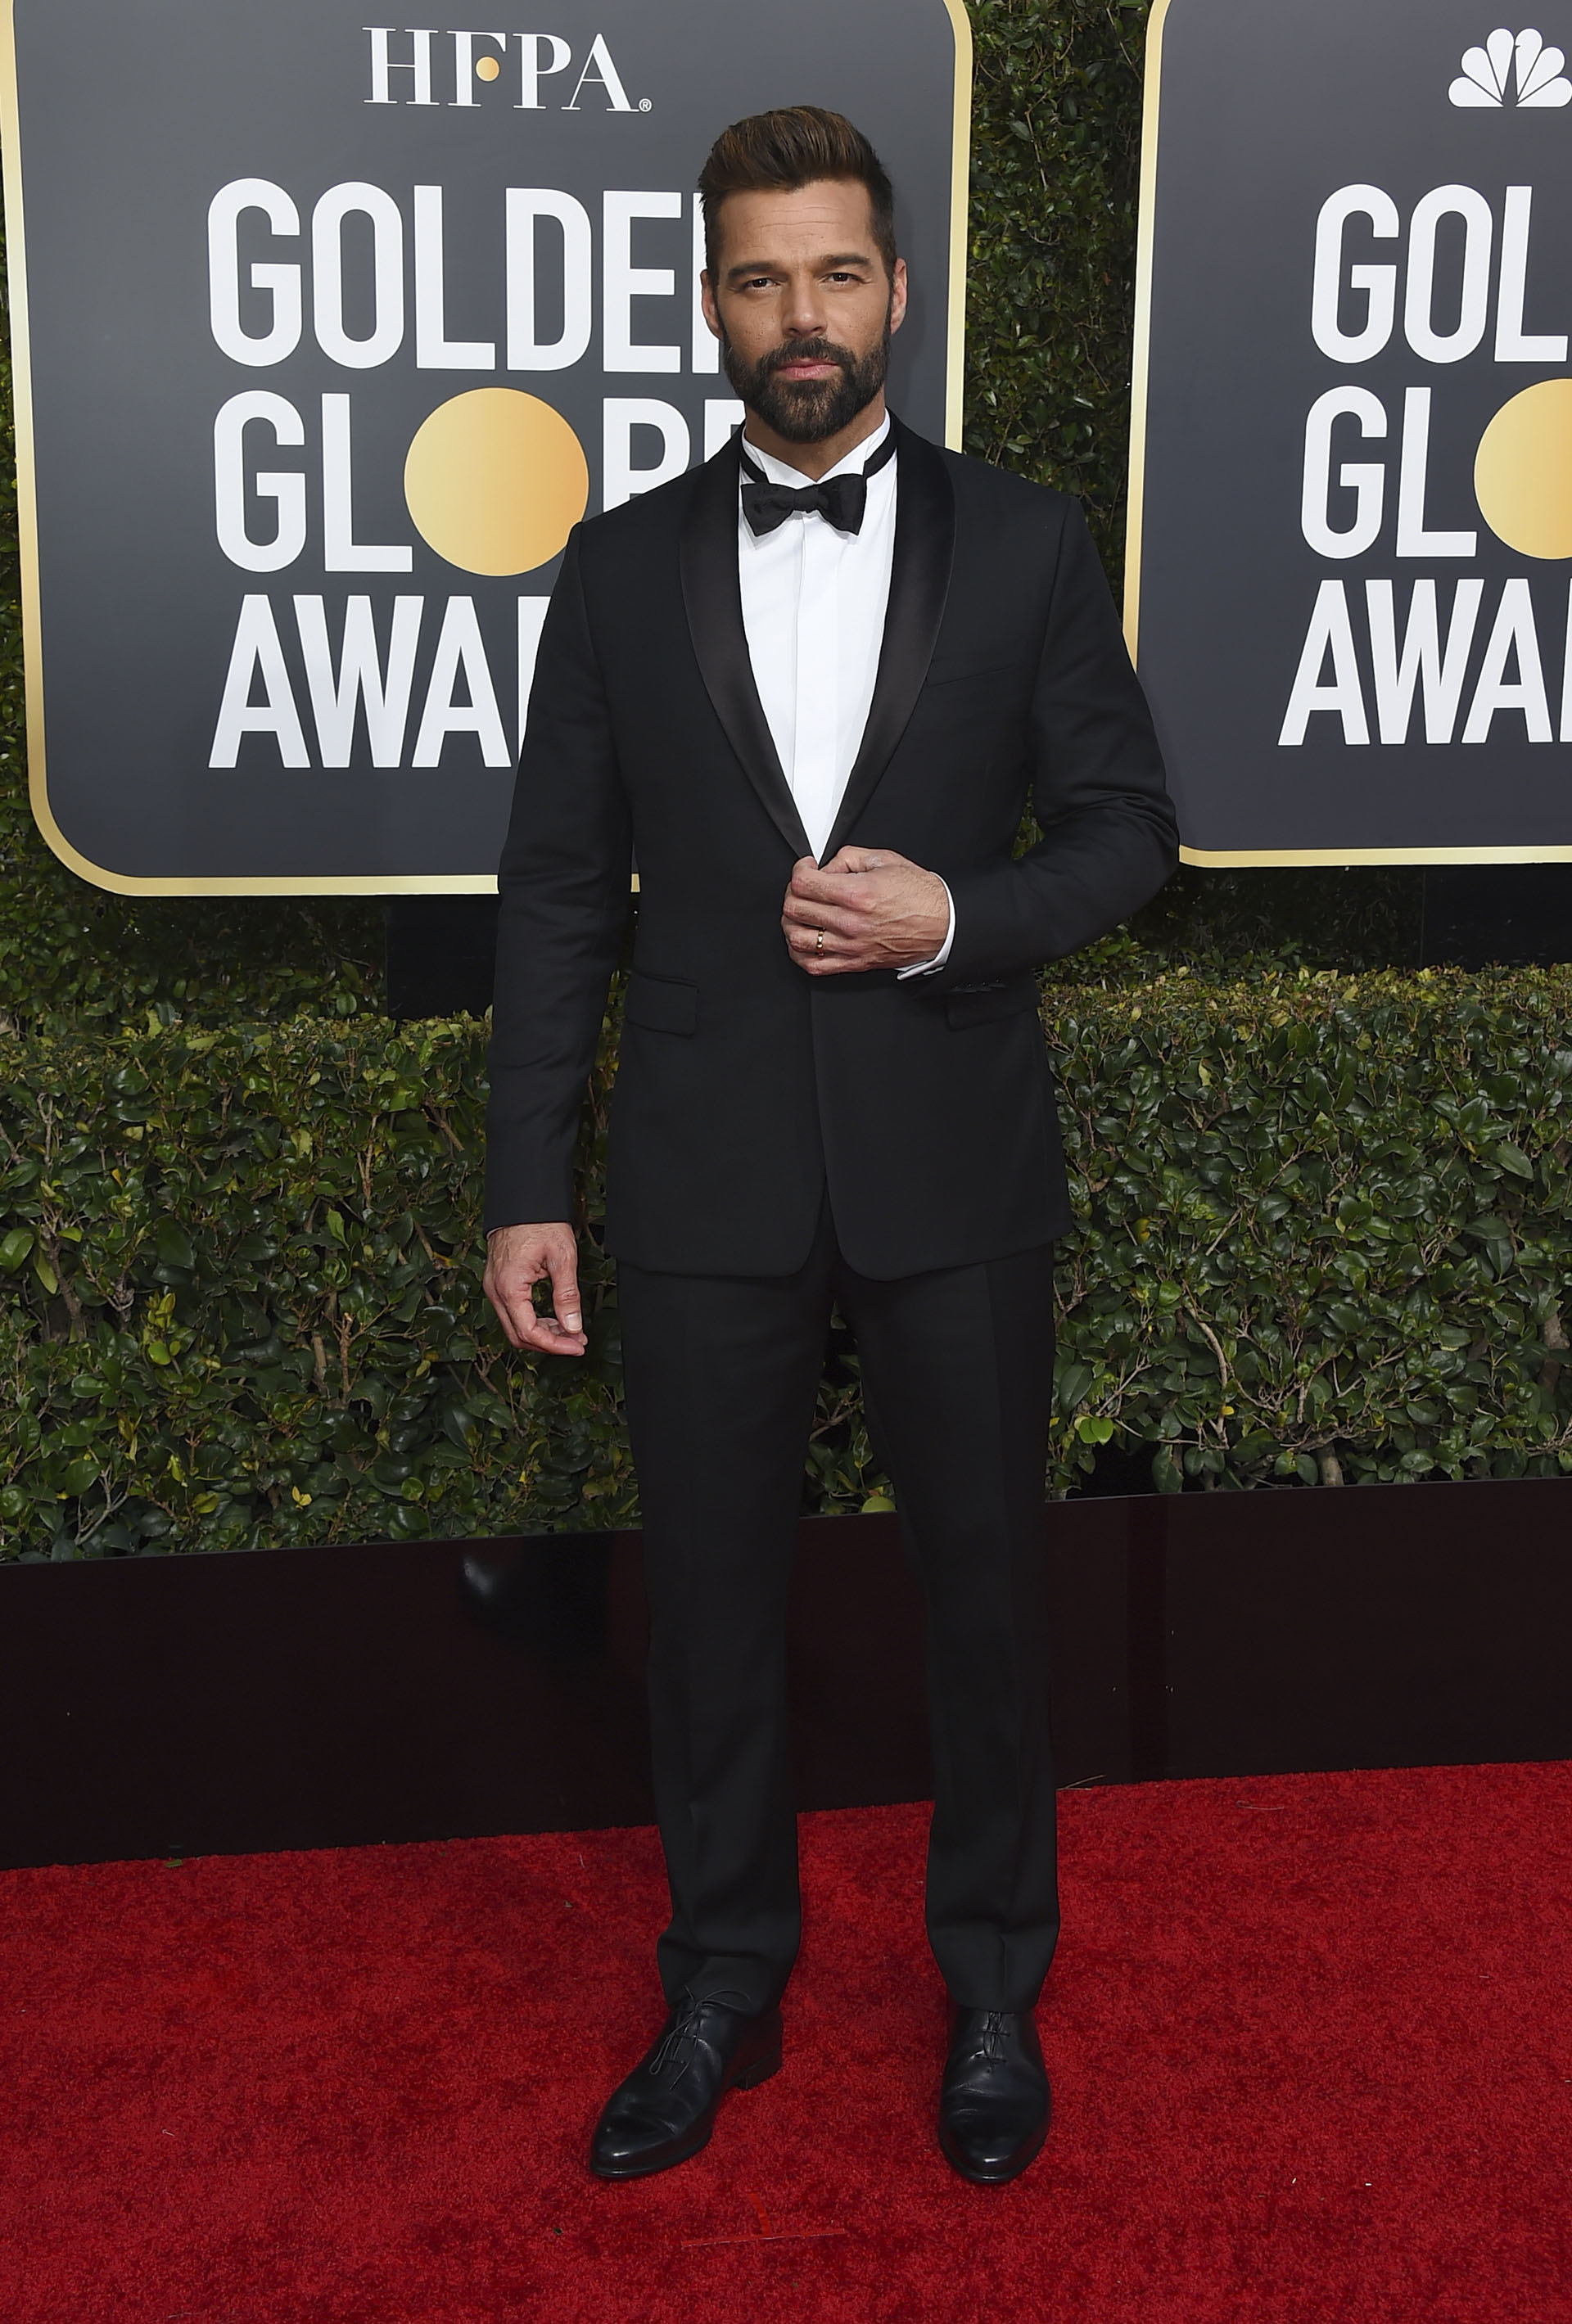 Ricky Martin arrives at the 76th annual Golden Globe Awards at the Beverly Hilton Hotel on Sunday, Jan. 6, 2019, in Beverly Hills, Calif. (Photo by Jordan Strauss/Invision/AP)